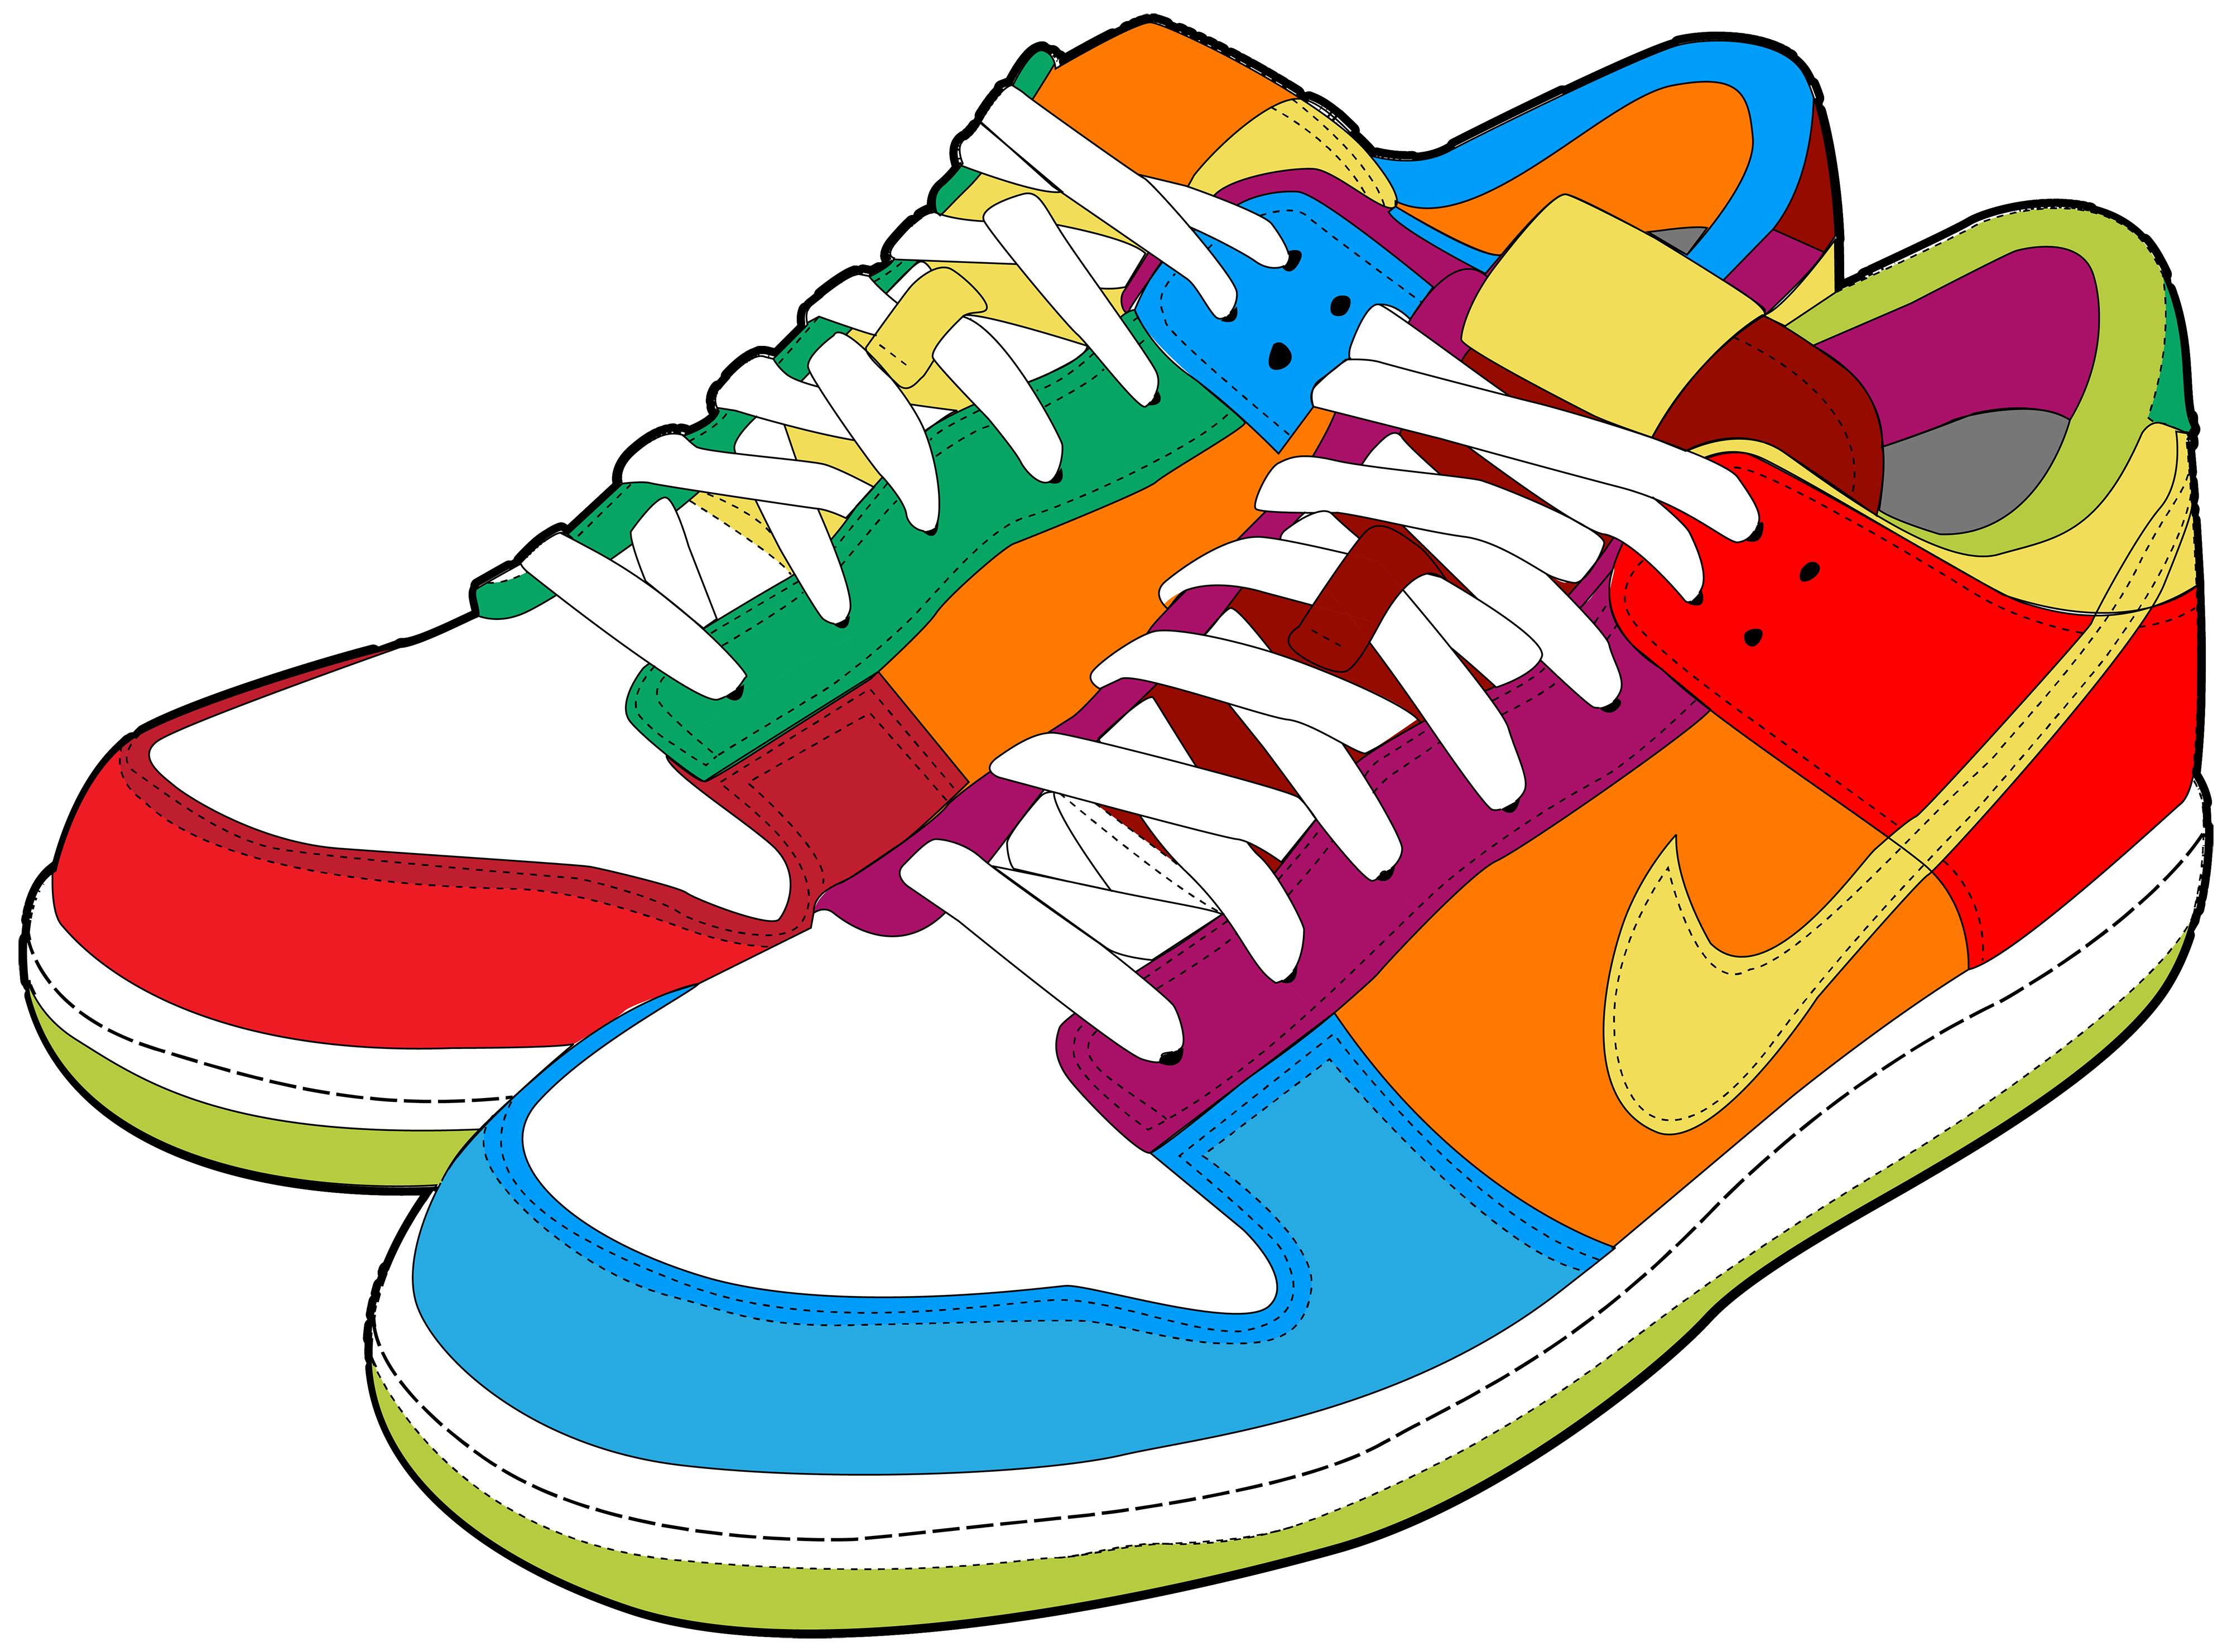 Pin by Orhan Özmen on shoes.